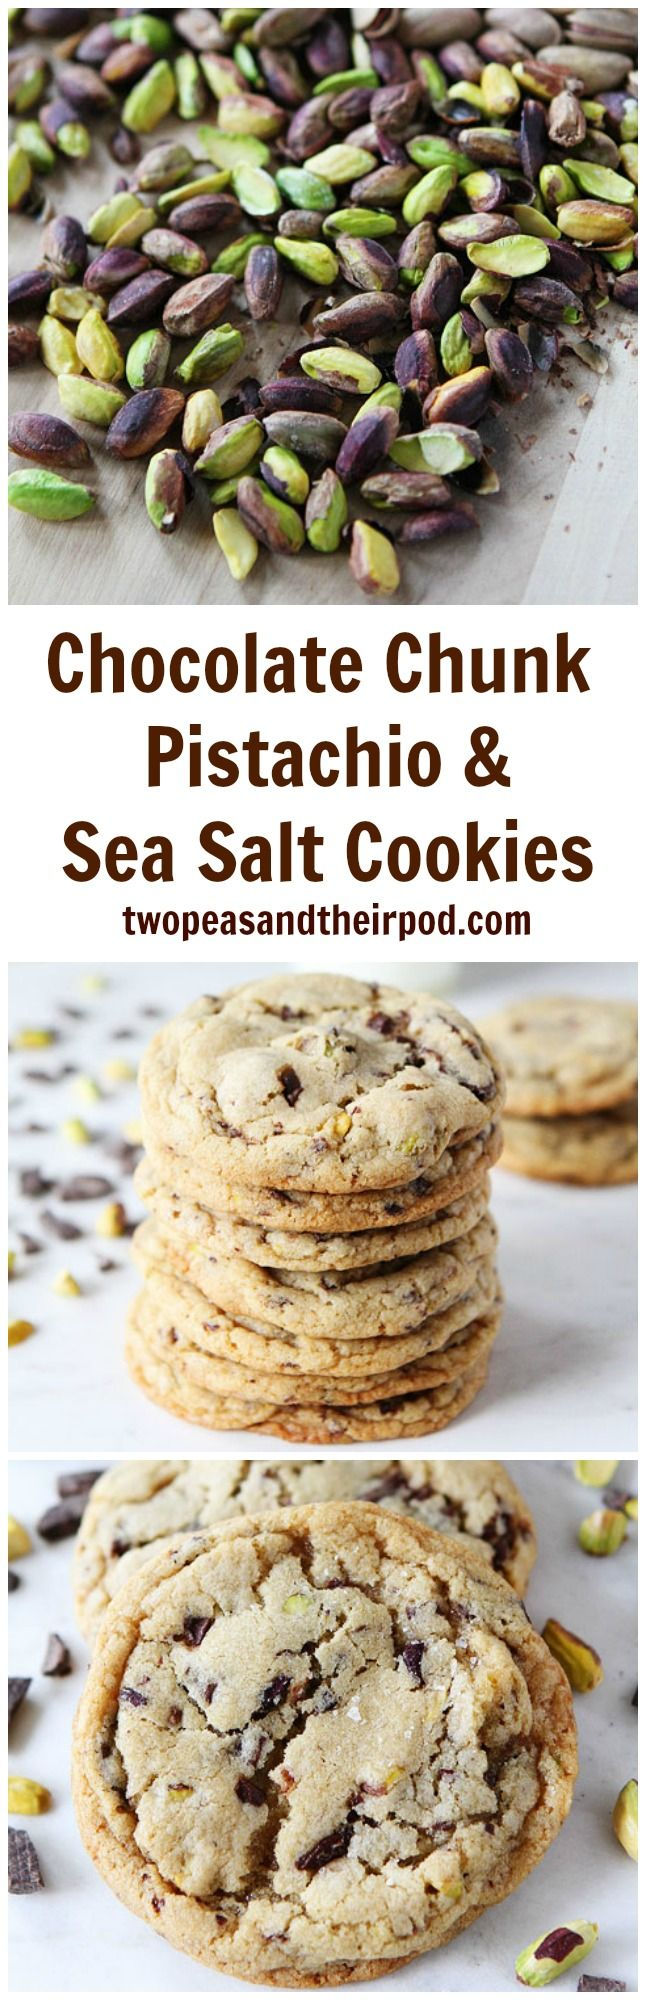 Chocolate Chunk, Pistachio, and Sea Salt Cookies Recipe on twopeasandtheirpod.com Soft and chewy chocolate chunk cookies with pistachios and a sprinkling of sea salt. These are the BEST cookies!